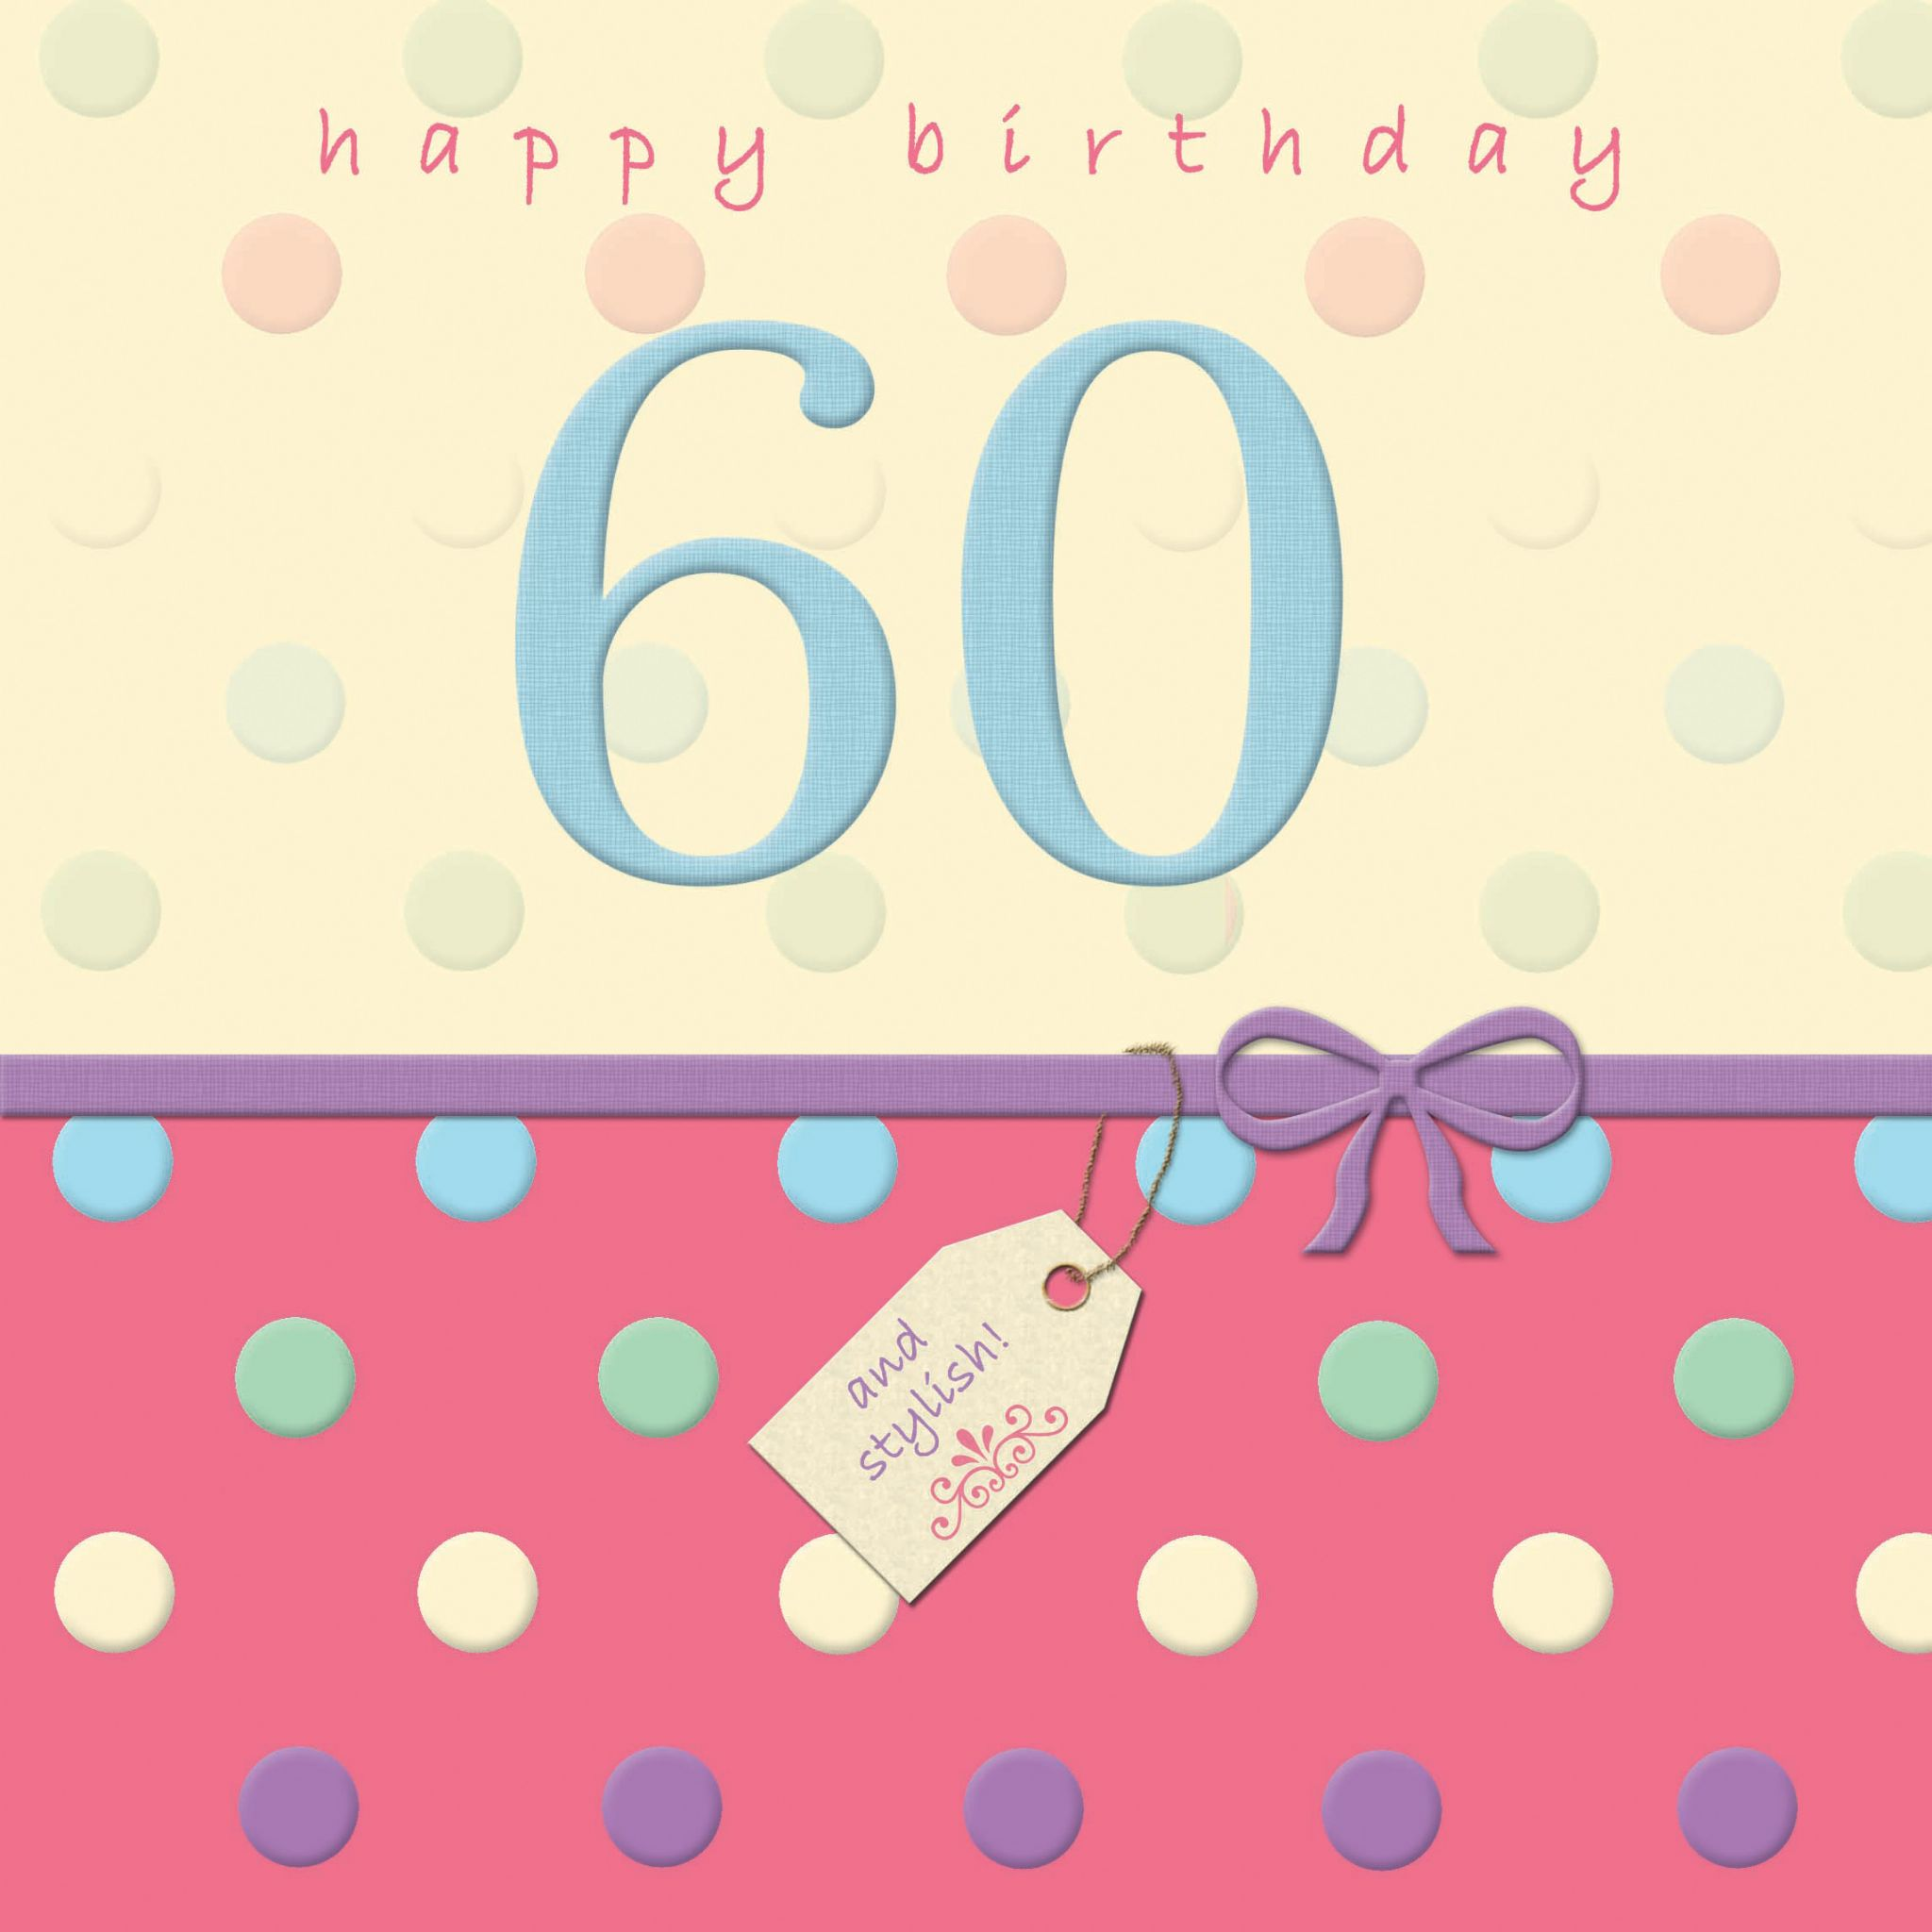 Greeting card greeting card uk birthday greeting cards happy birthday card 60 with swarovski crystal dotty days bookmarktalkfo Image collections